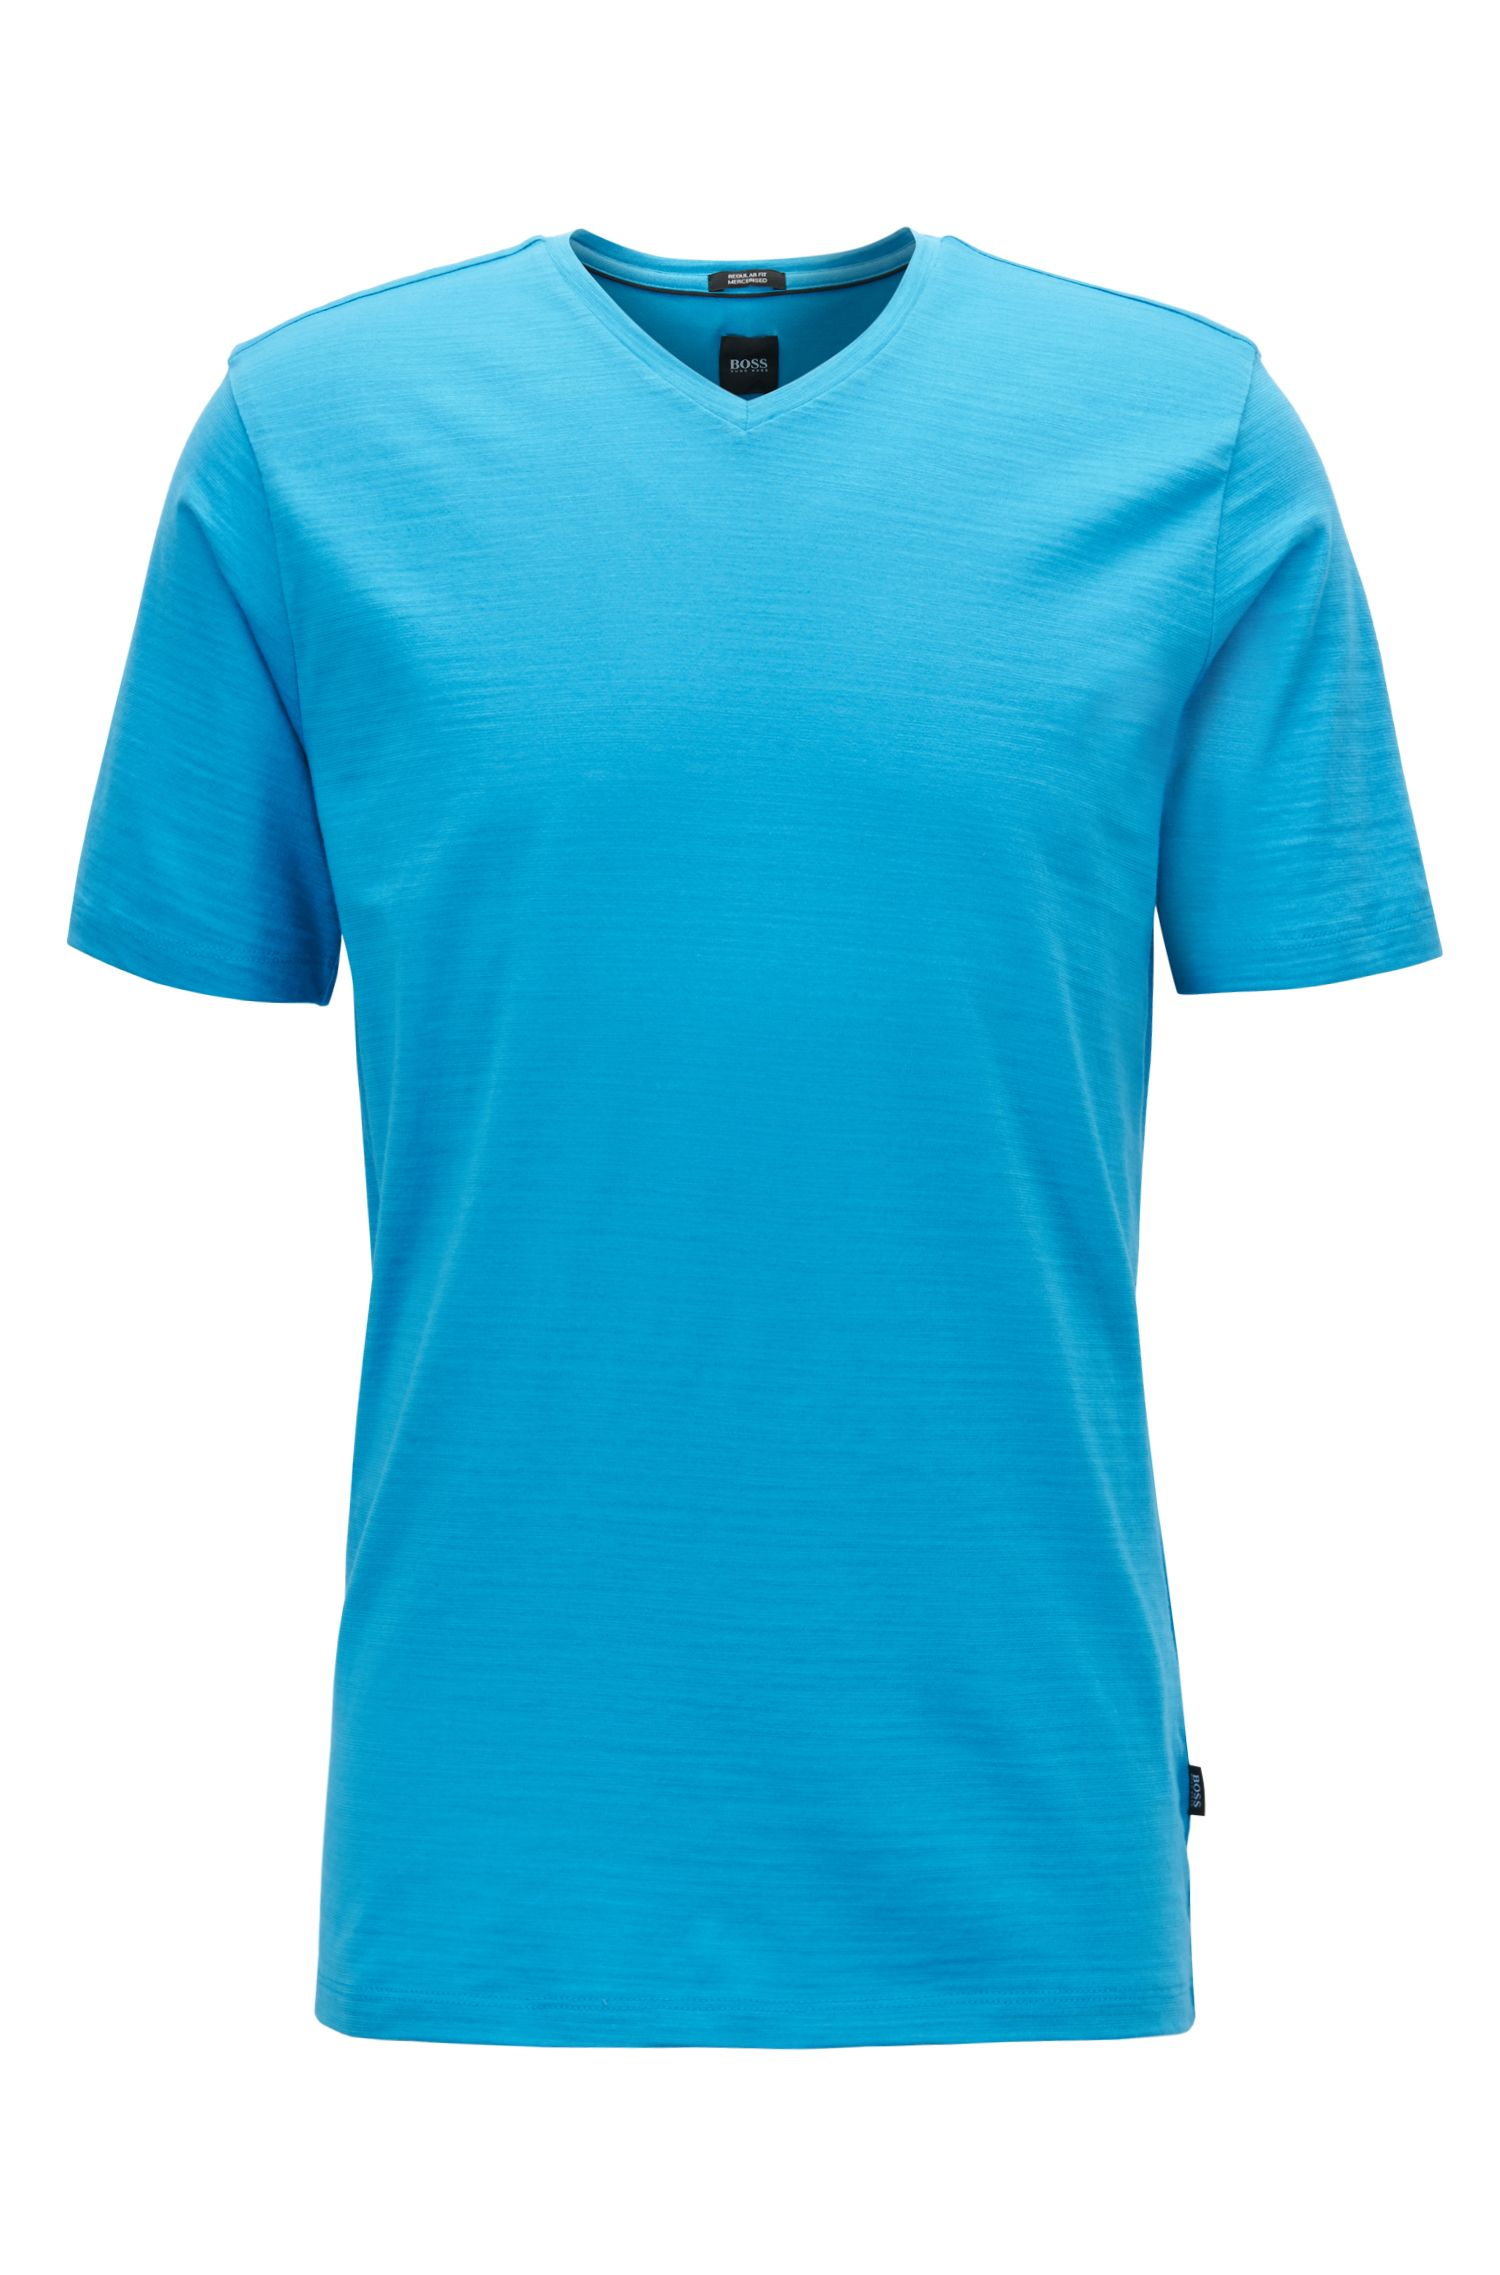 T-shirt Regular Fit en coton mercerisé, Bleu vif